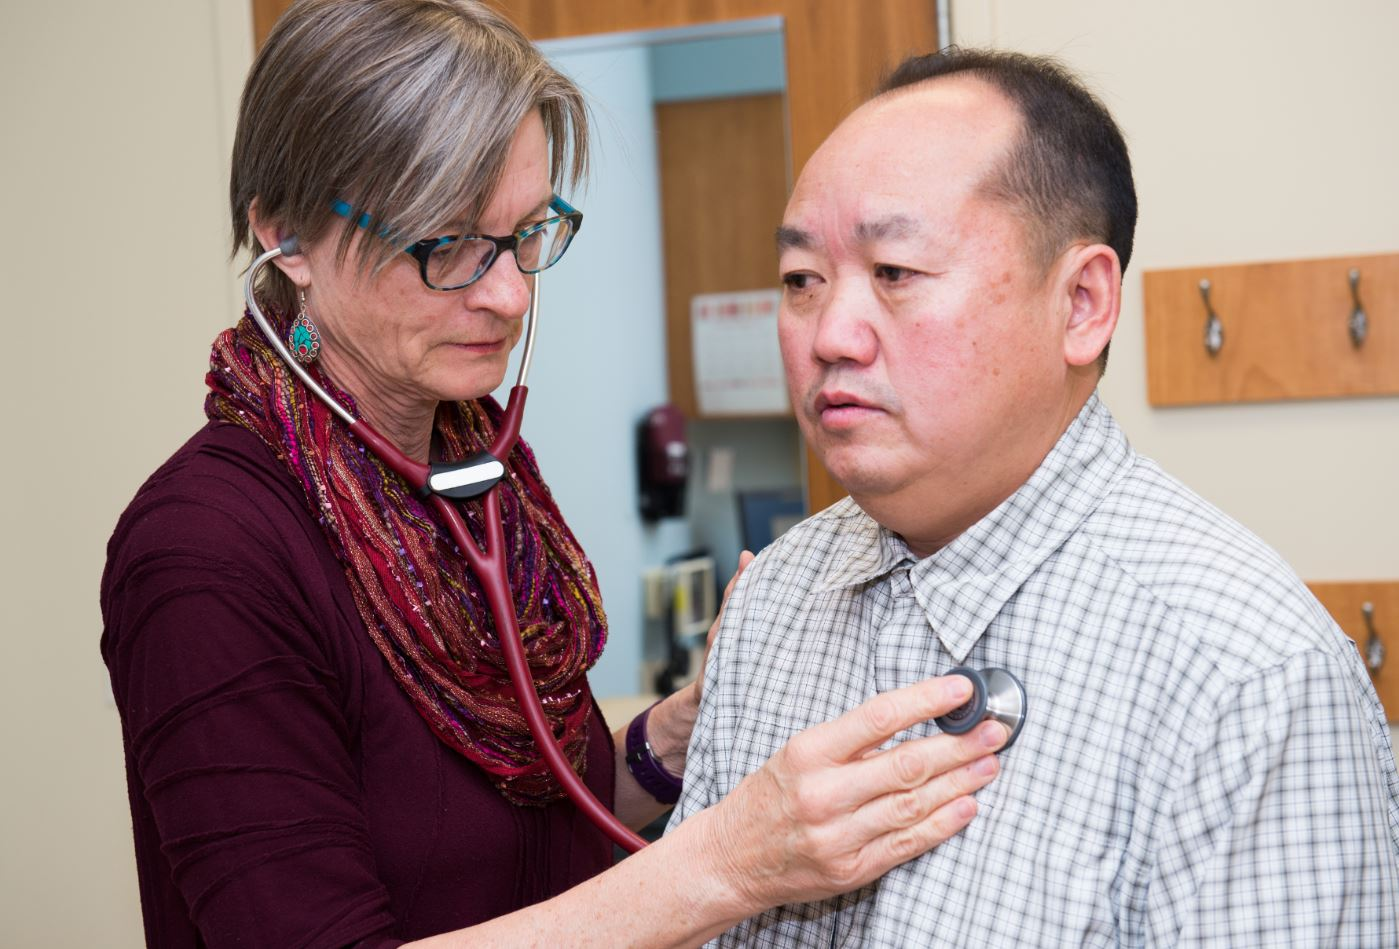 Doctor with Hmong patient Saint Paul